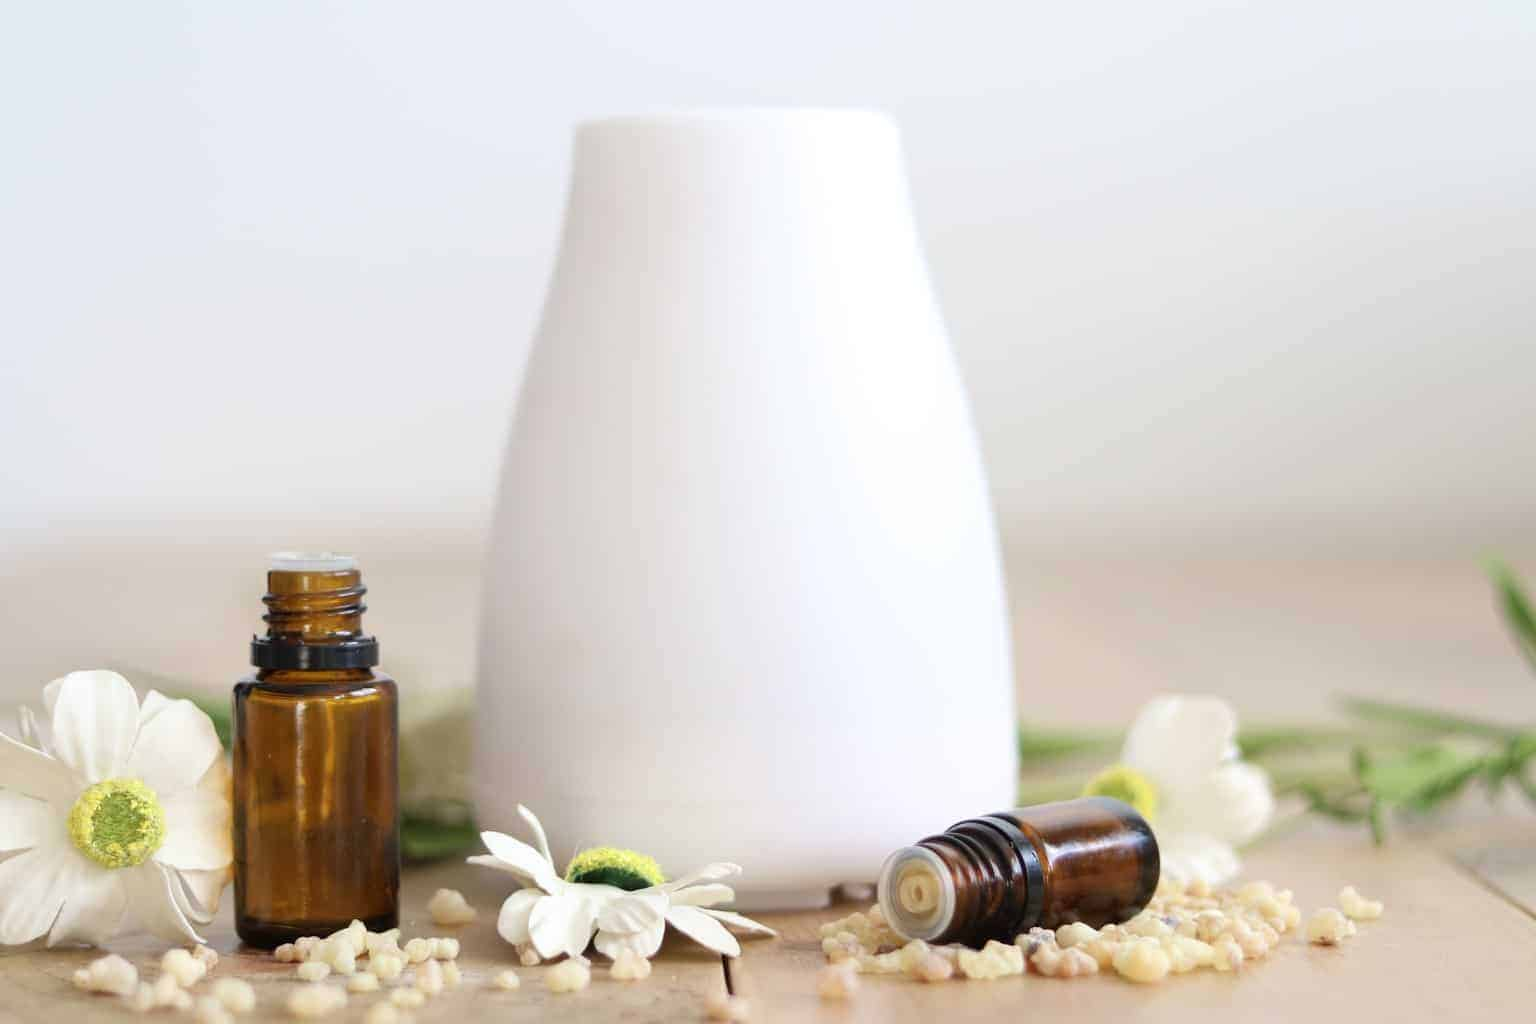 Learn how to use essential oils to change your mood and promote positive feelings.